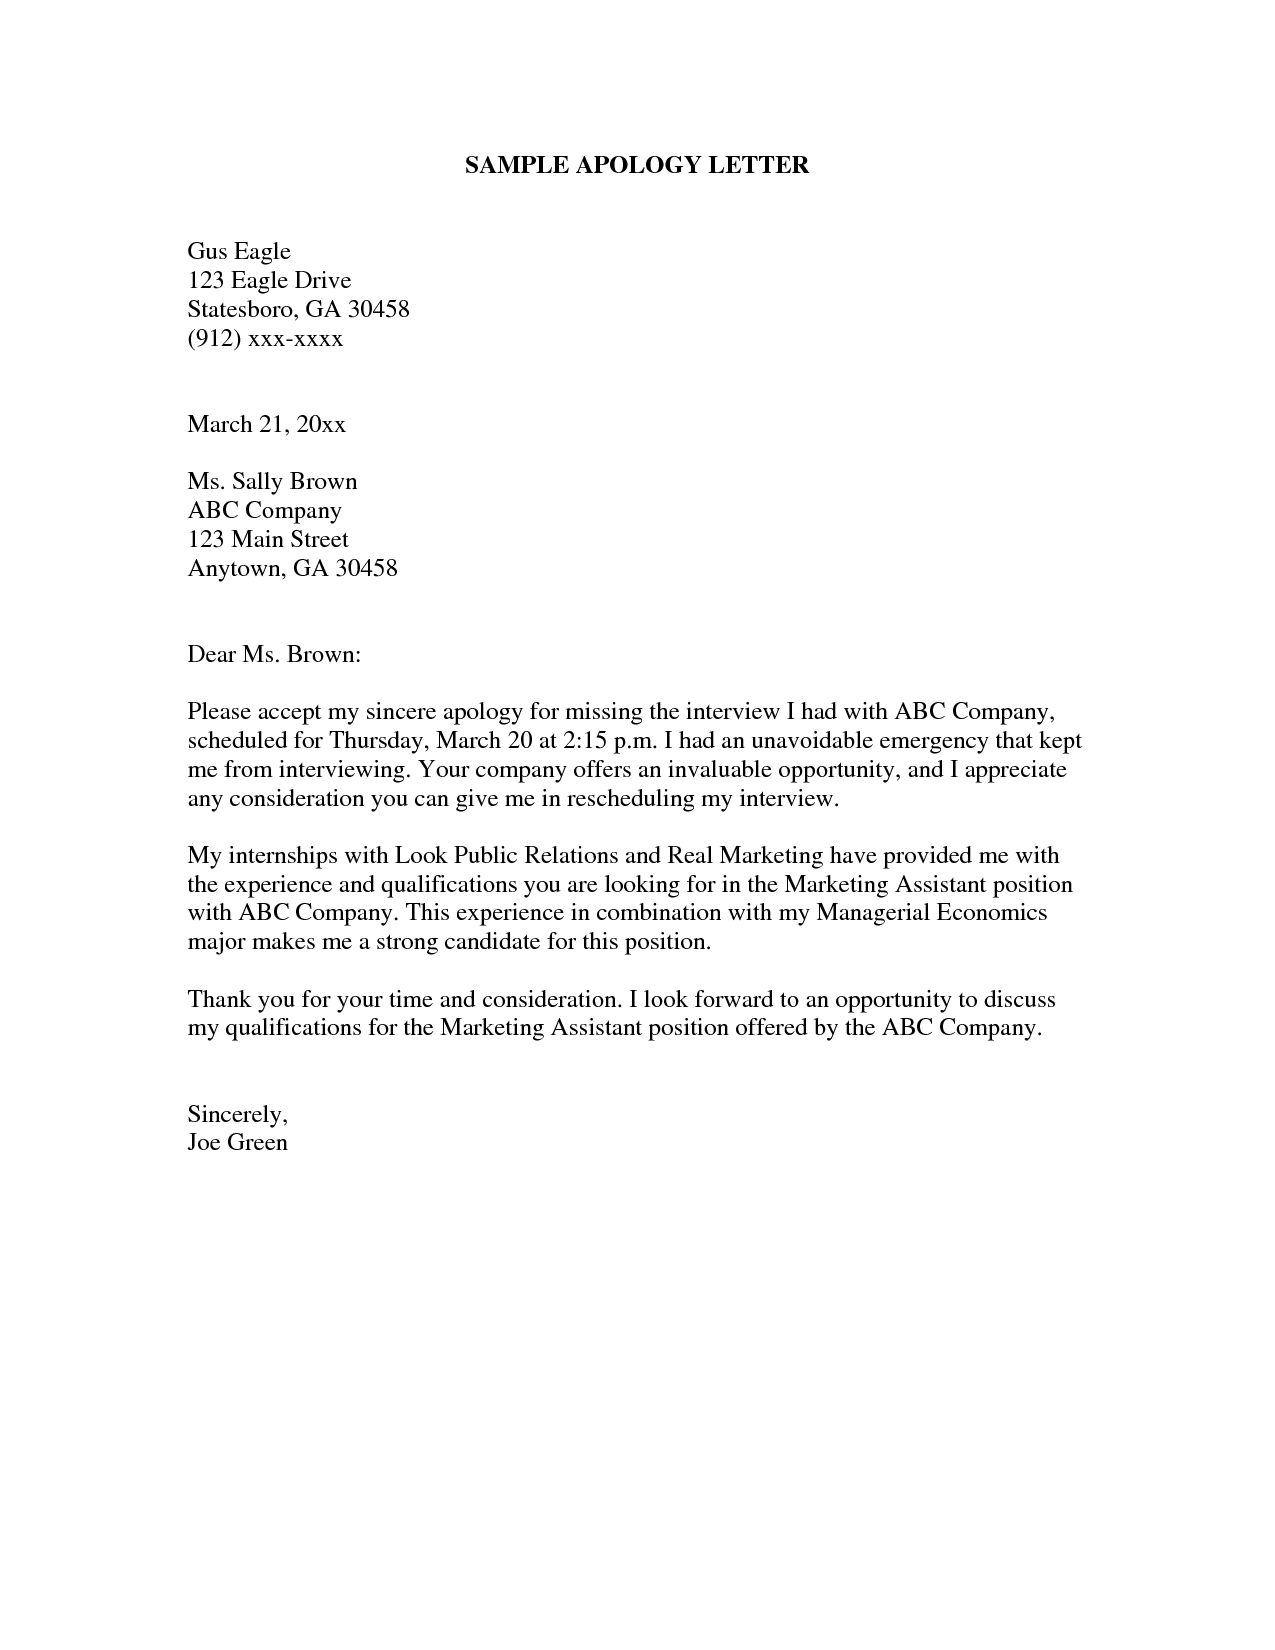 apology letter sample – cool green jobs